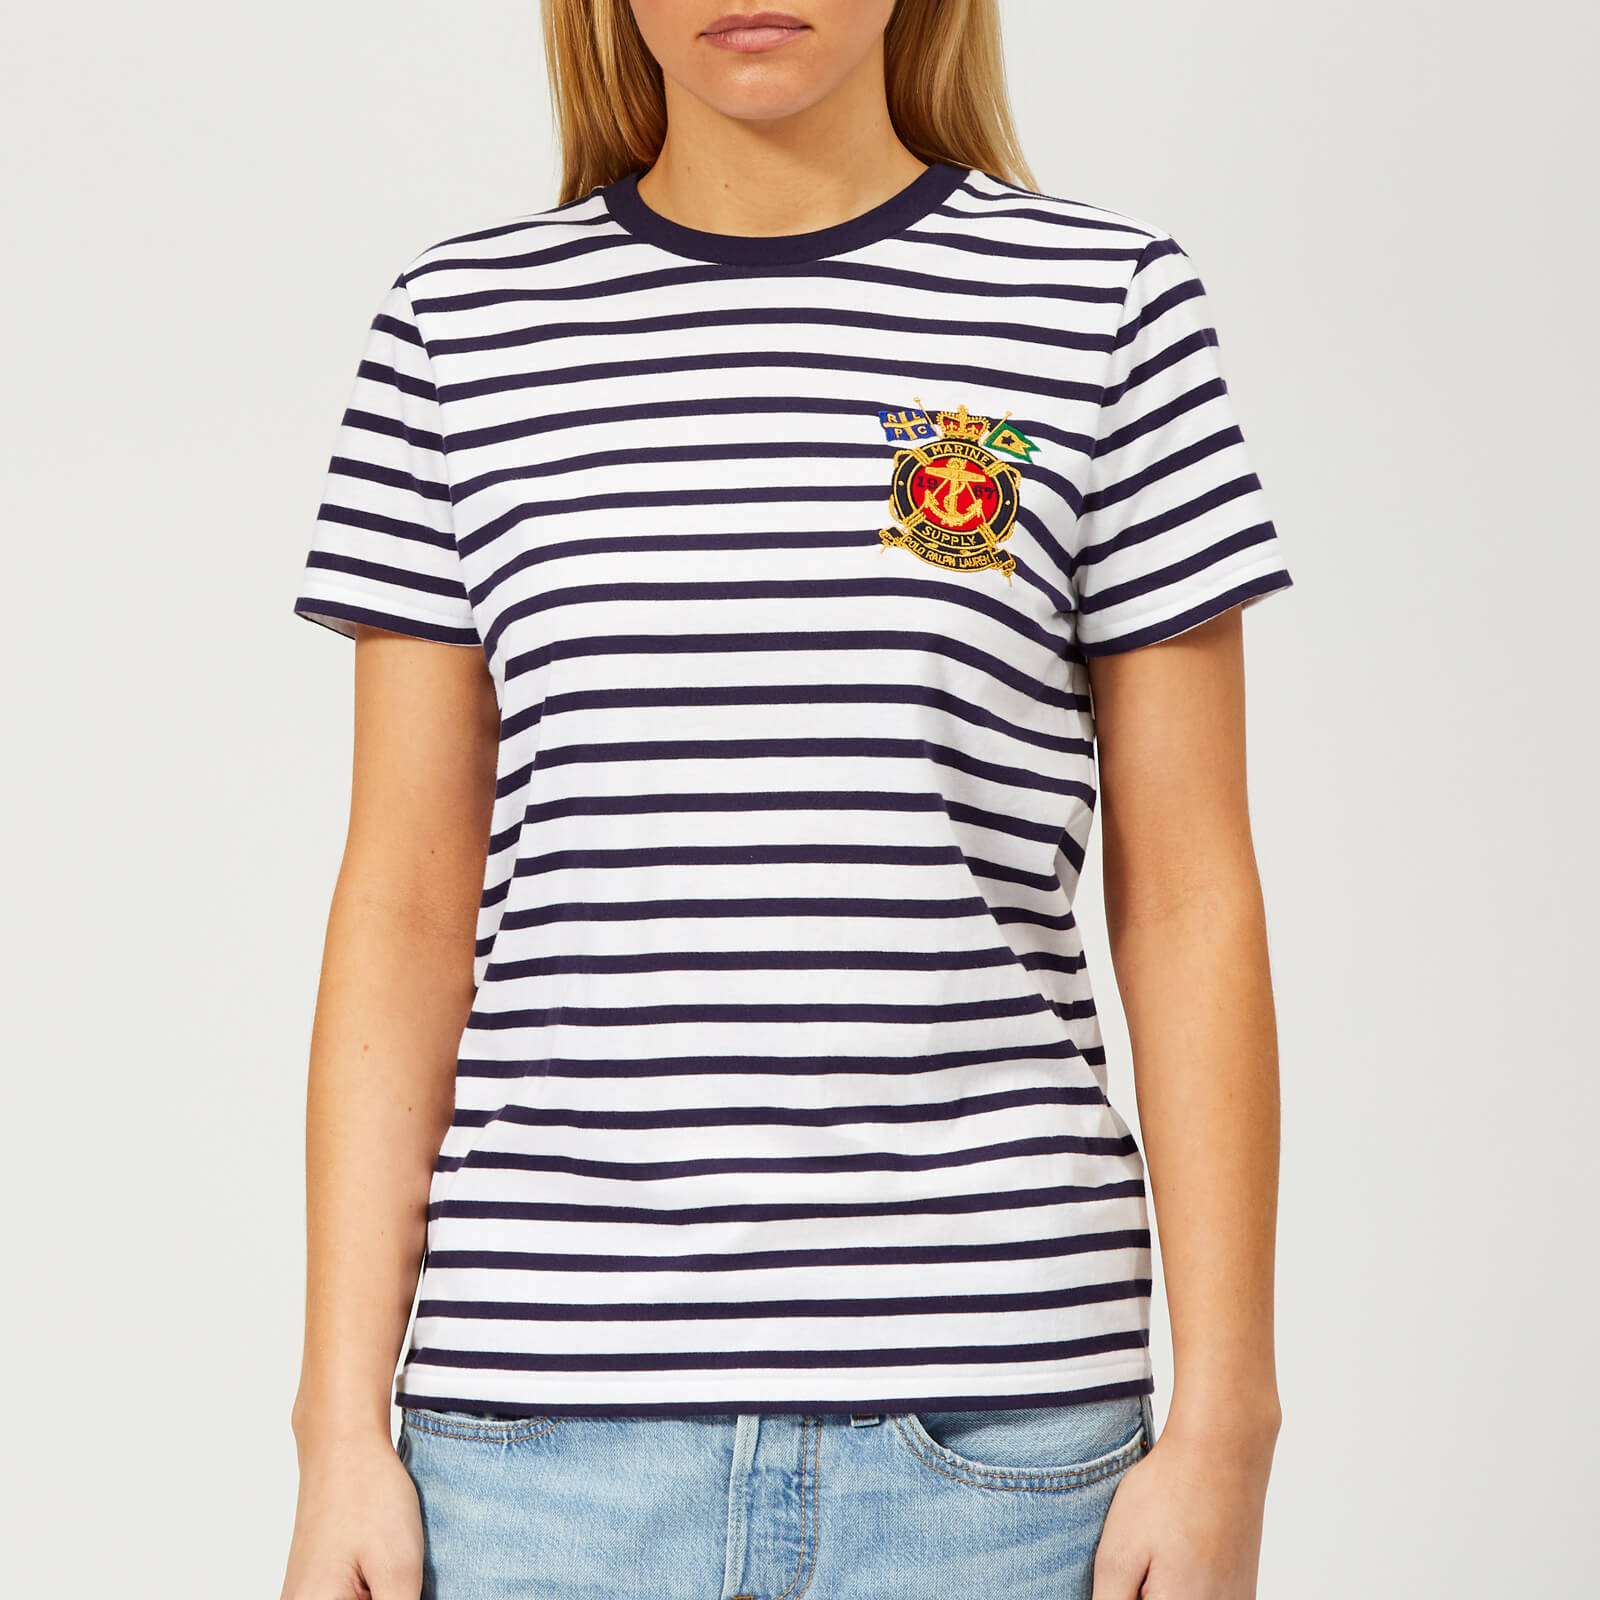 45d318c92c Polo Ralph Lauren Women's Cross Flag Stripe T-Shirt - Multi